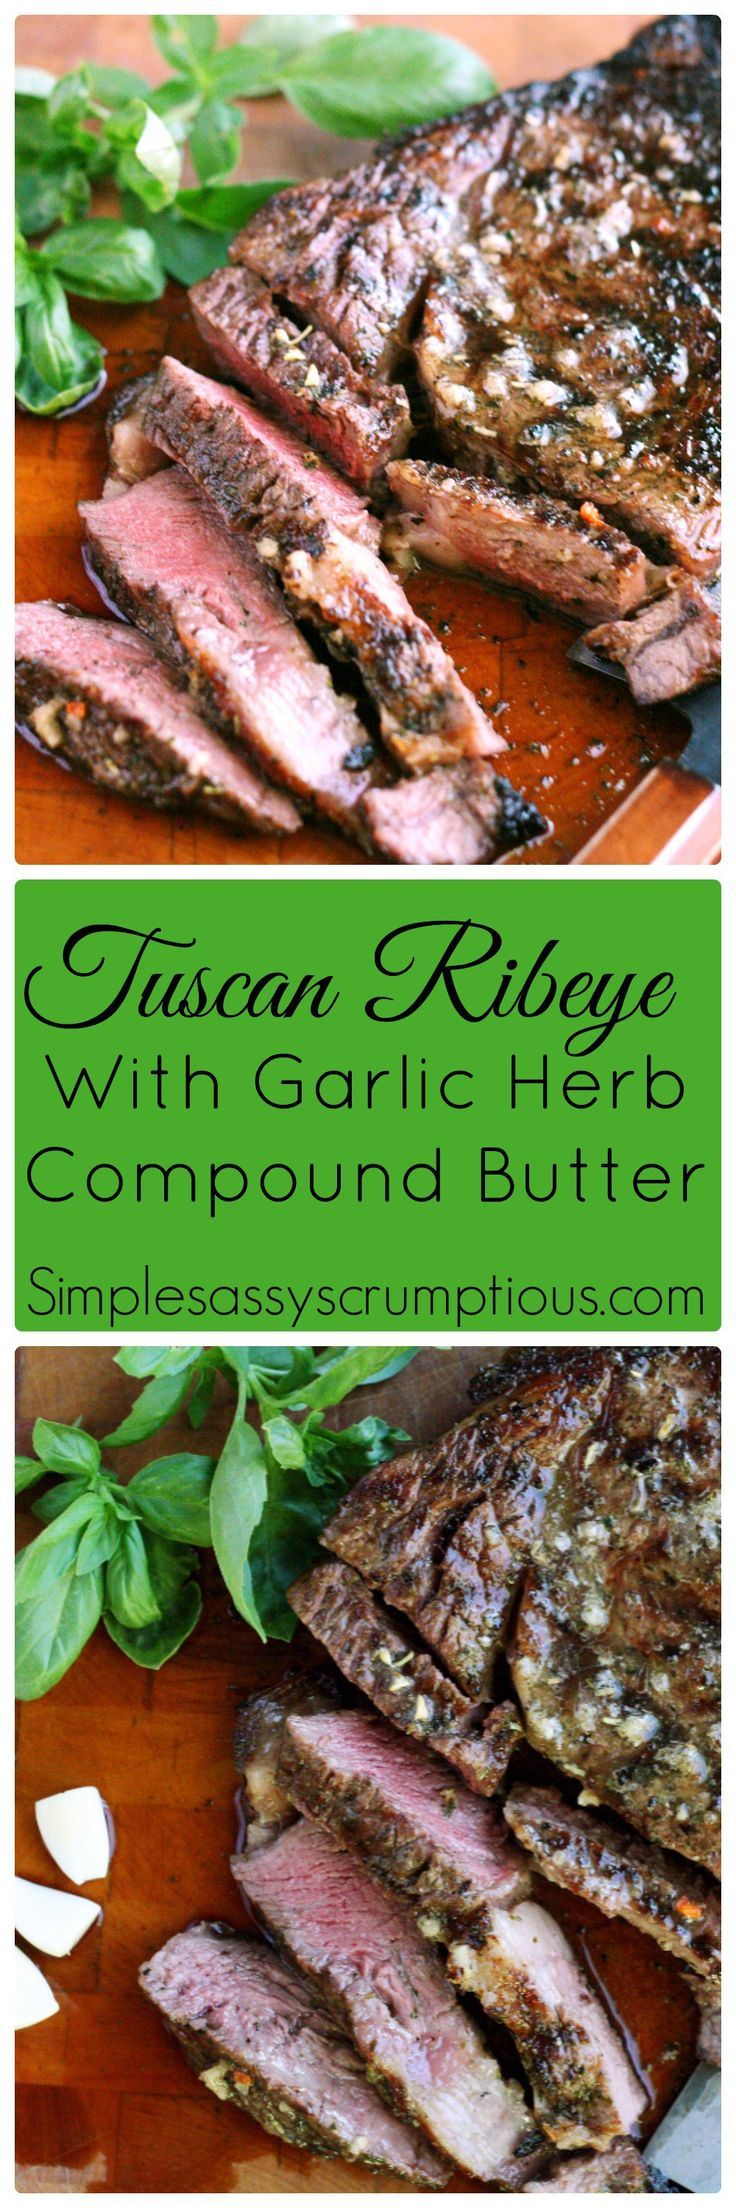 Tender marinated Tuscan Ribeye with Garlic Herb Compound Butter. The addition of the Garlic Herb compound butter after grilling adds amazing flavor.